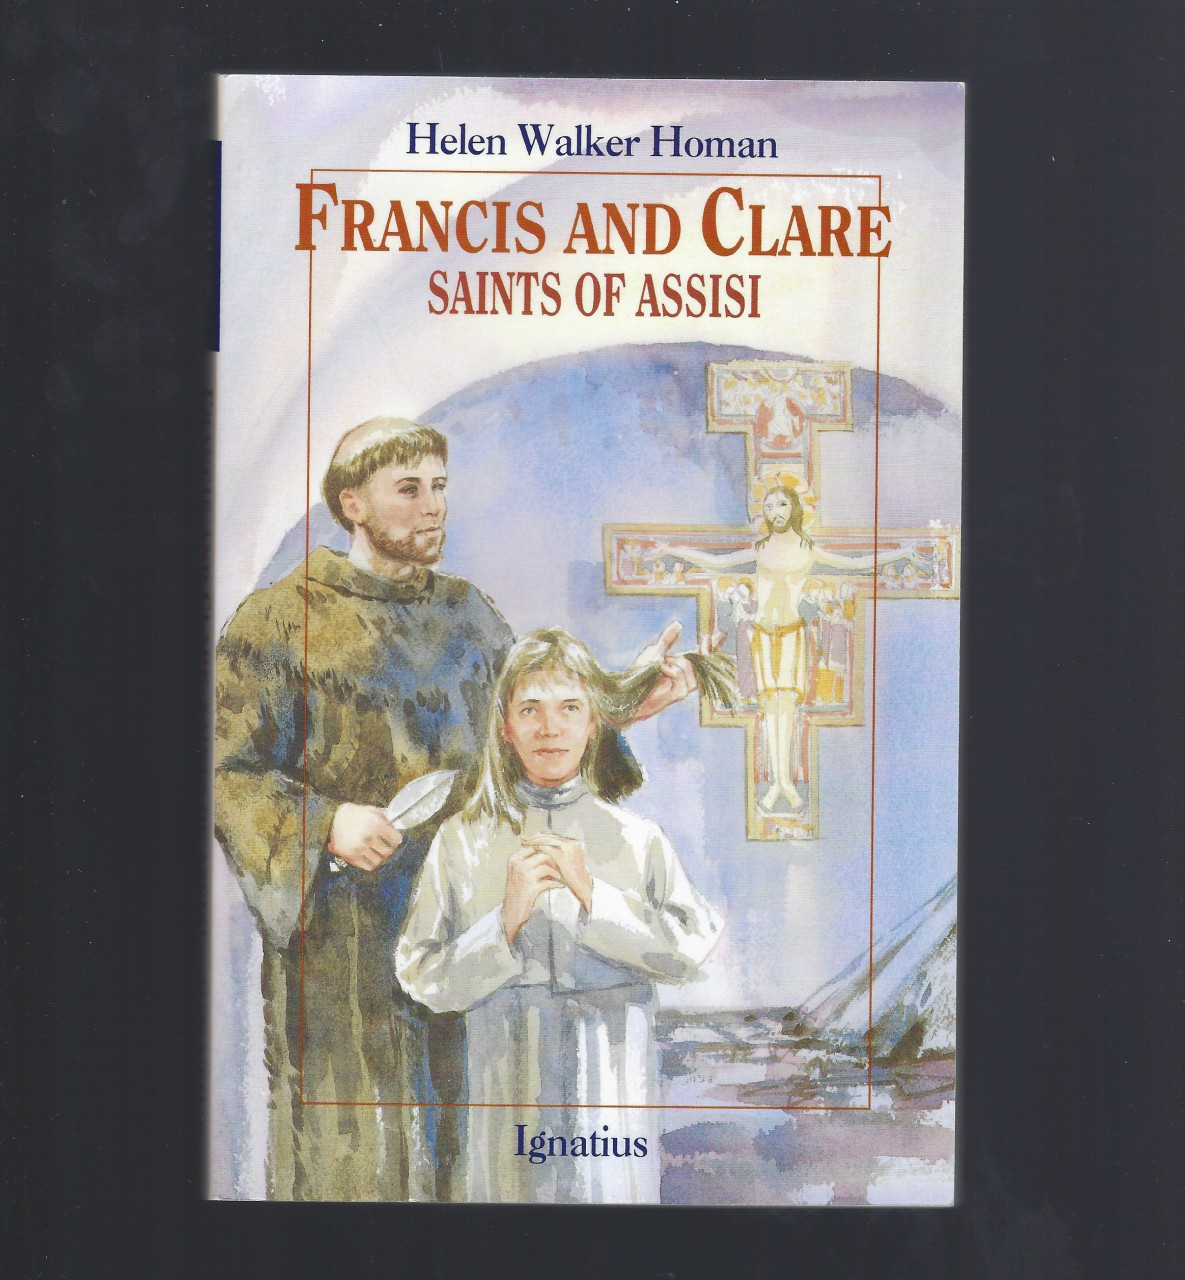 Francis and Clare Saints of Assisi (VG) (Vision Book Series), Helen Walker Homan